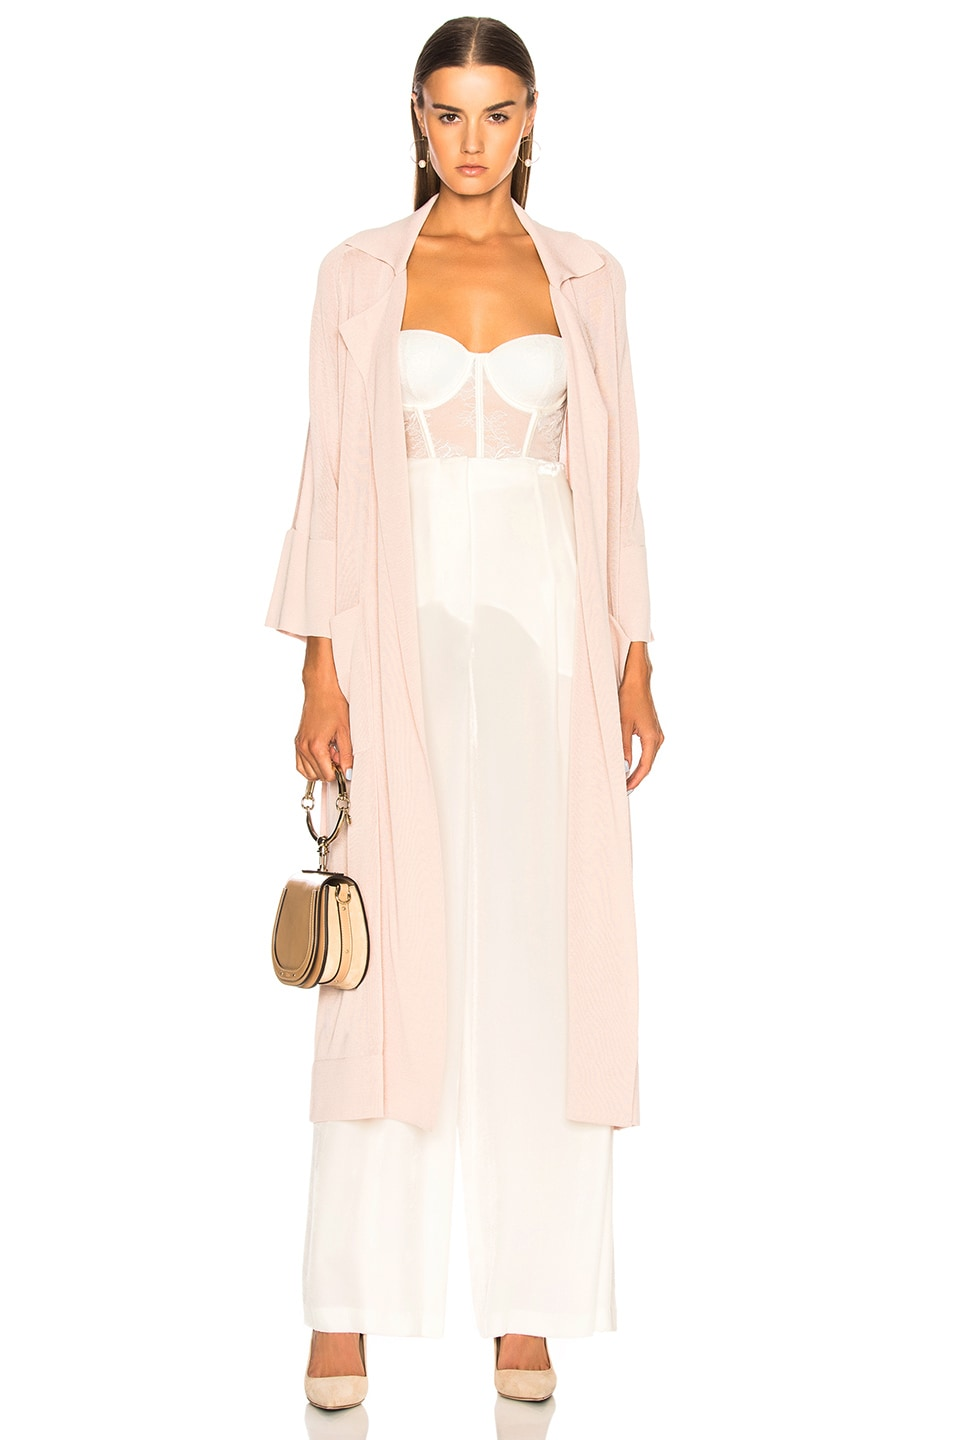 SOYER SUMMER BELTED TRENCH COAT IN PINK